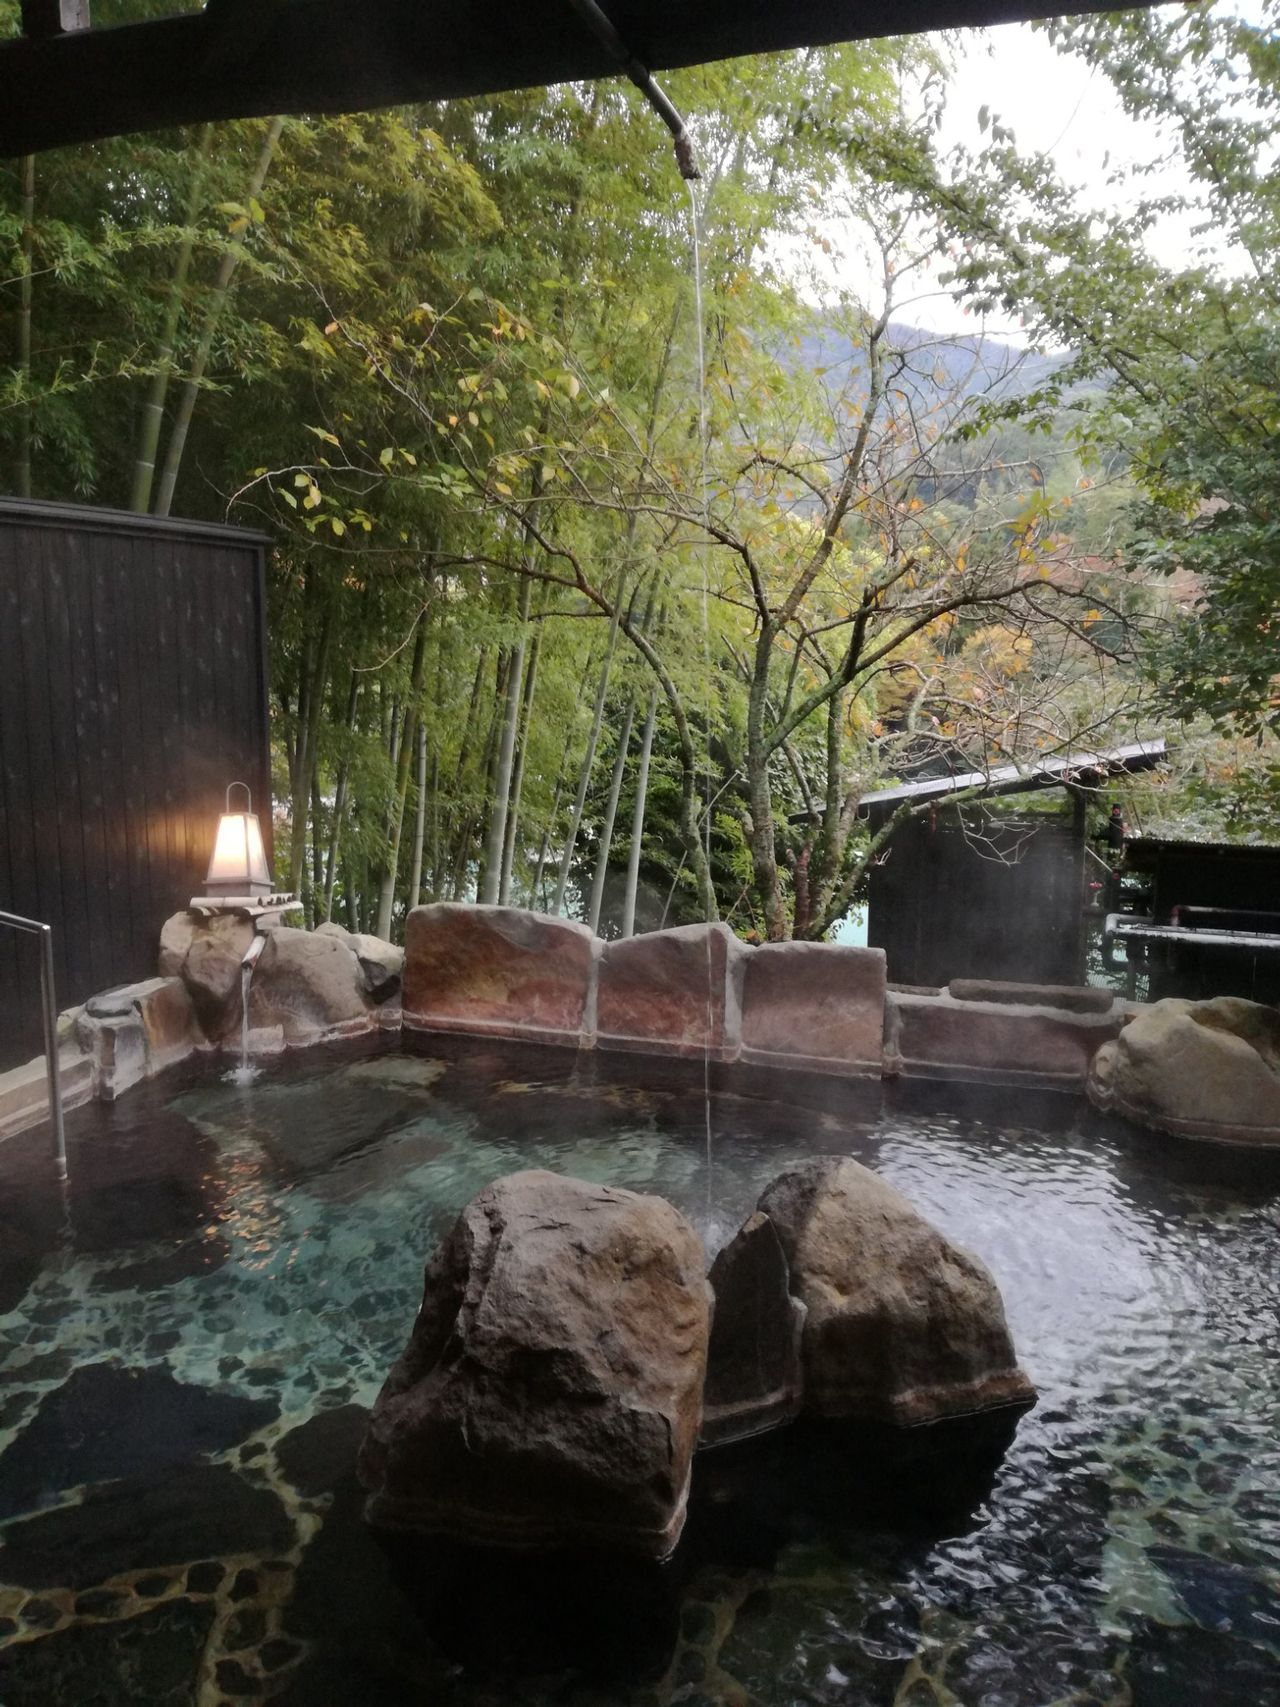 Tree Water Reflection Nature No People Tranquility Growth Tranquil Scene Outdoors Beauty In Nature Day Sky Onsen Rotenburo Yugawara Secret Place Travel Nature Forest